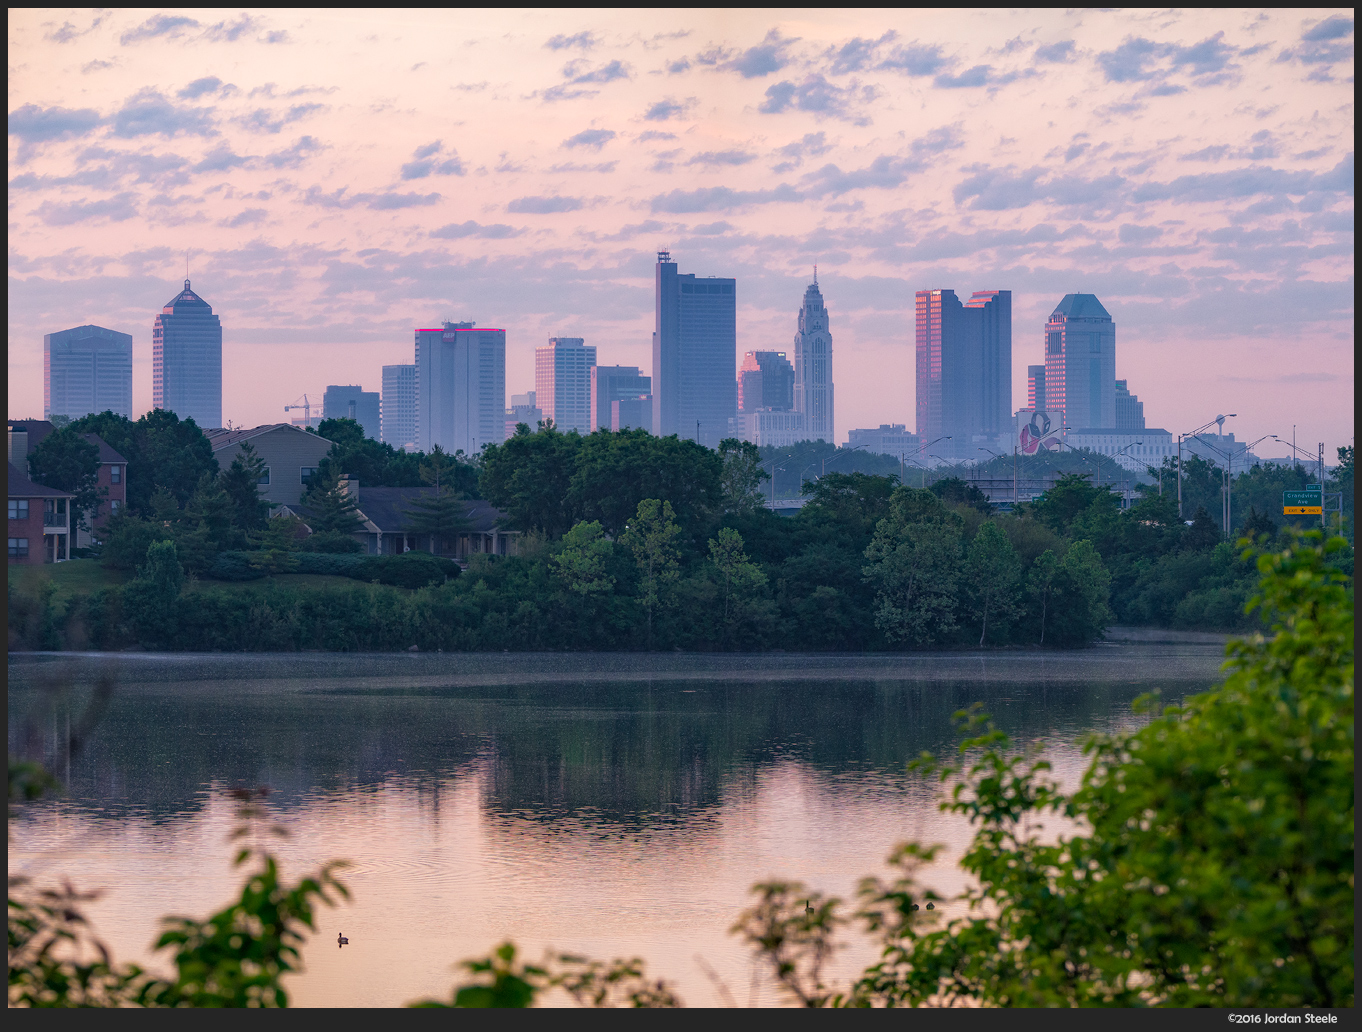 Columbus Morning - Olympus OM-D E-M10 Mark II with Panasonic Leica 100-400mm f/4-6.3 @